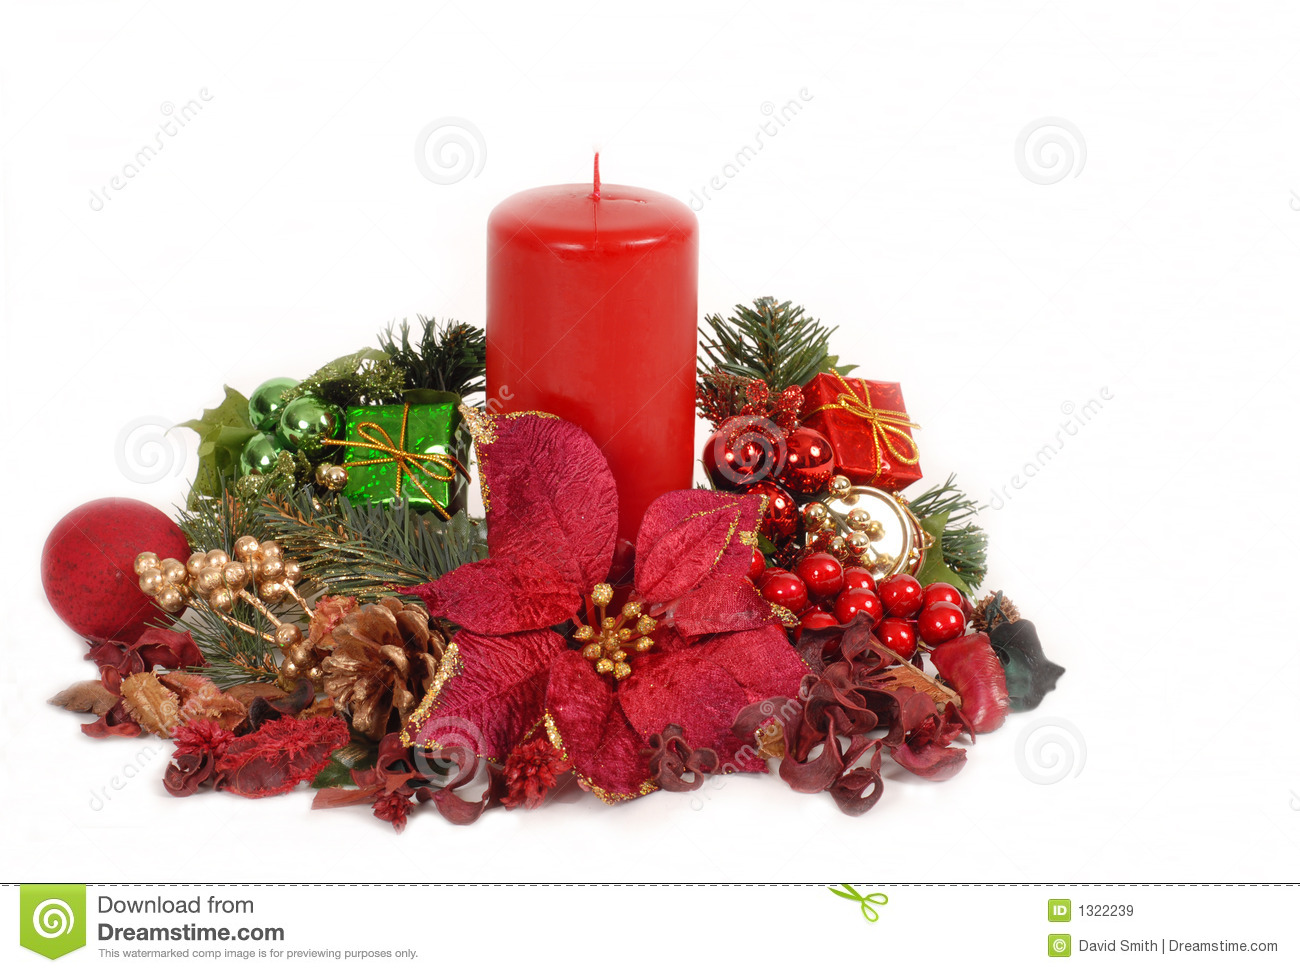 Red Christamas candle in poinsettia setting